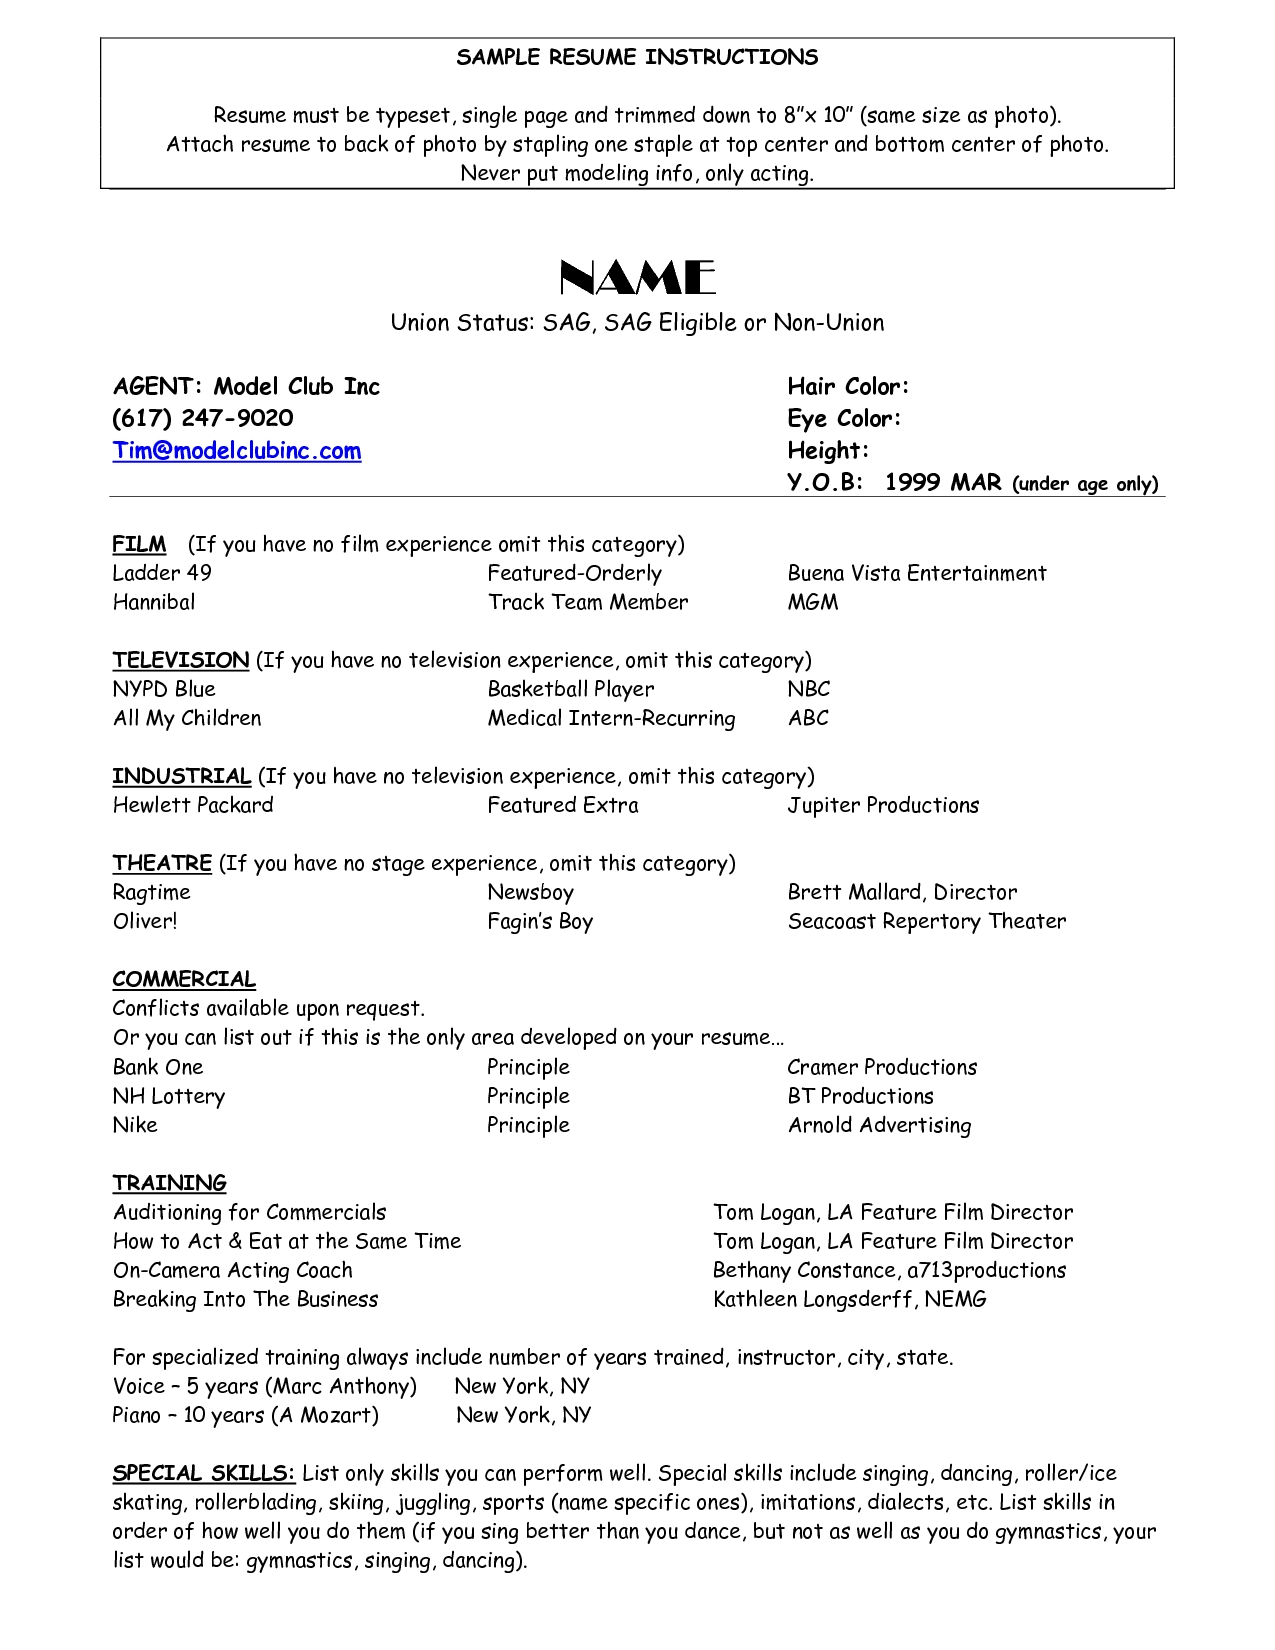 Resume For Child Actor | Scope Of Work Template | Acting